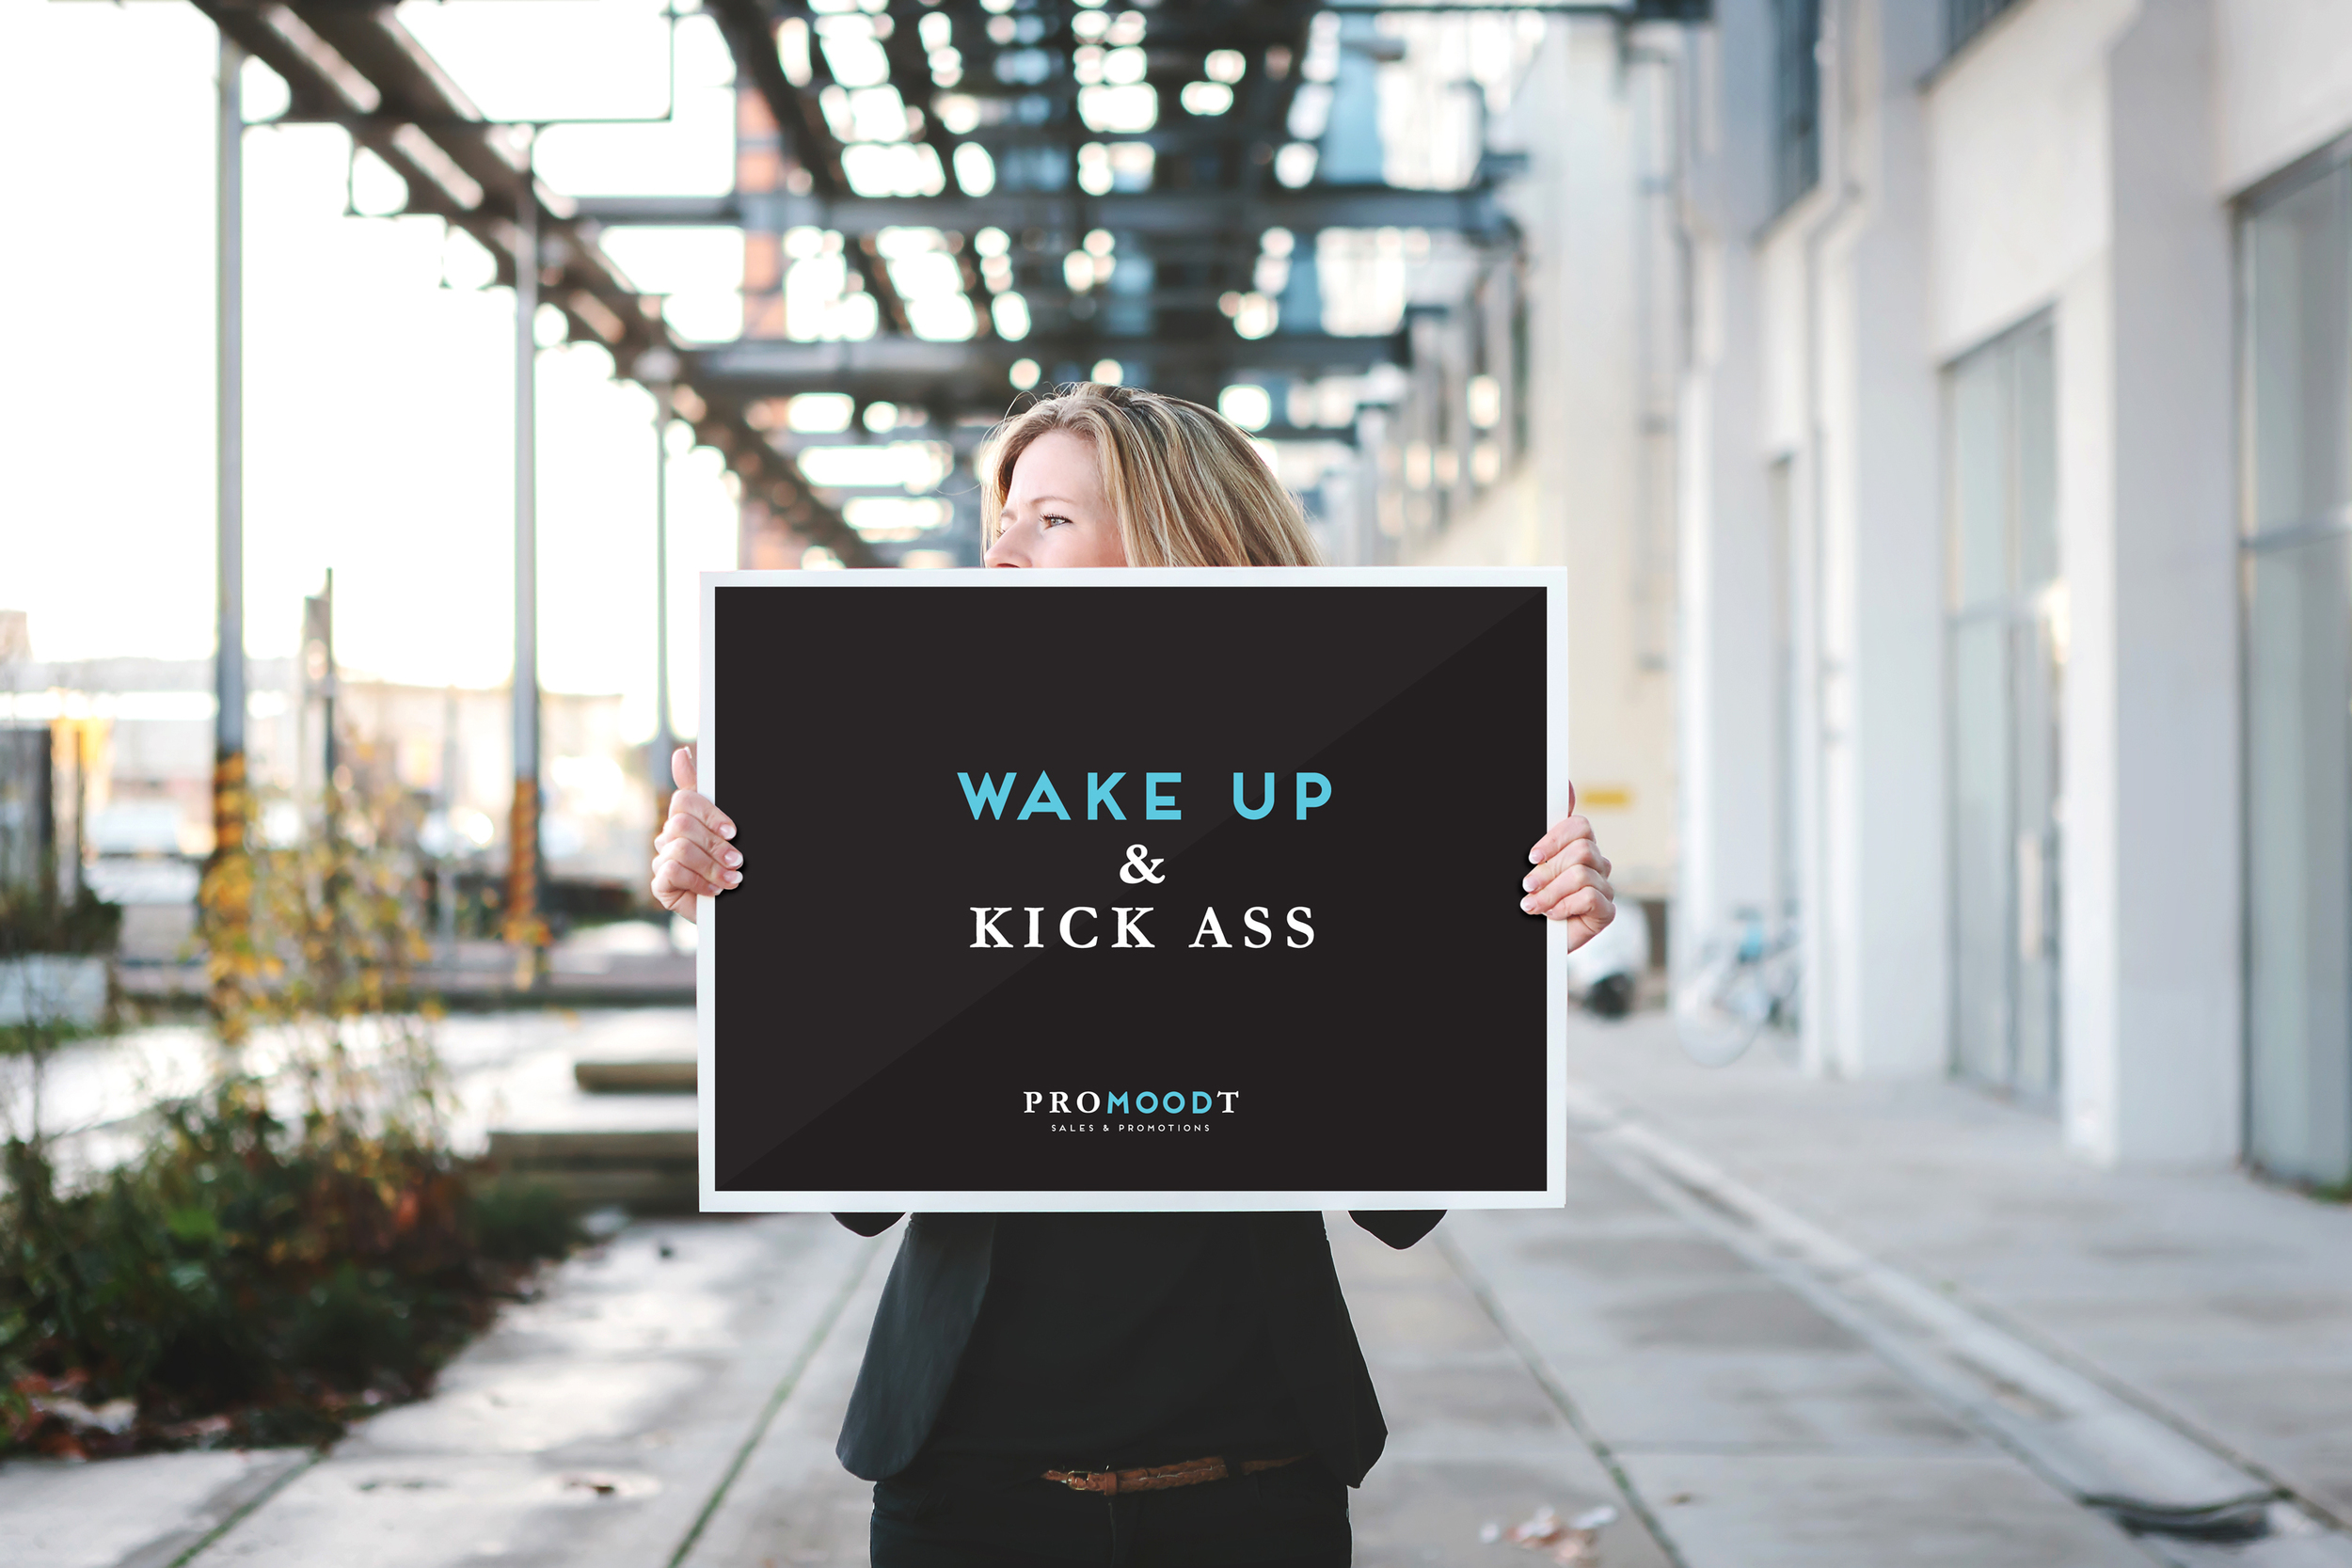 promoodt_wake-up-and-kick-ass.jpg